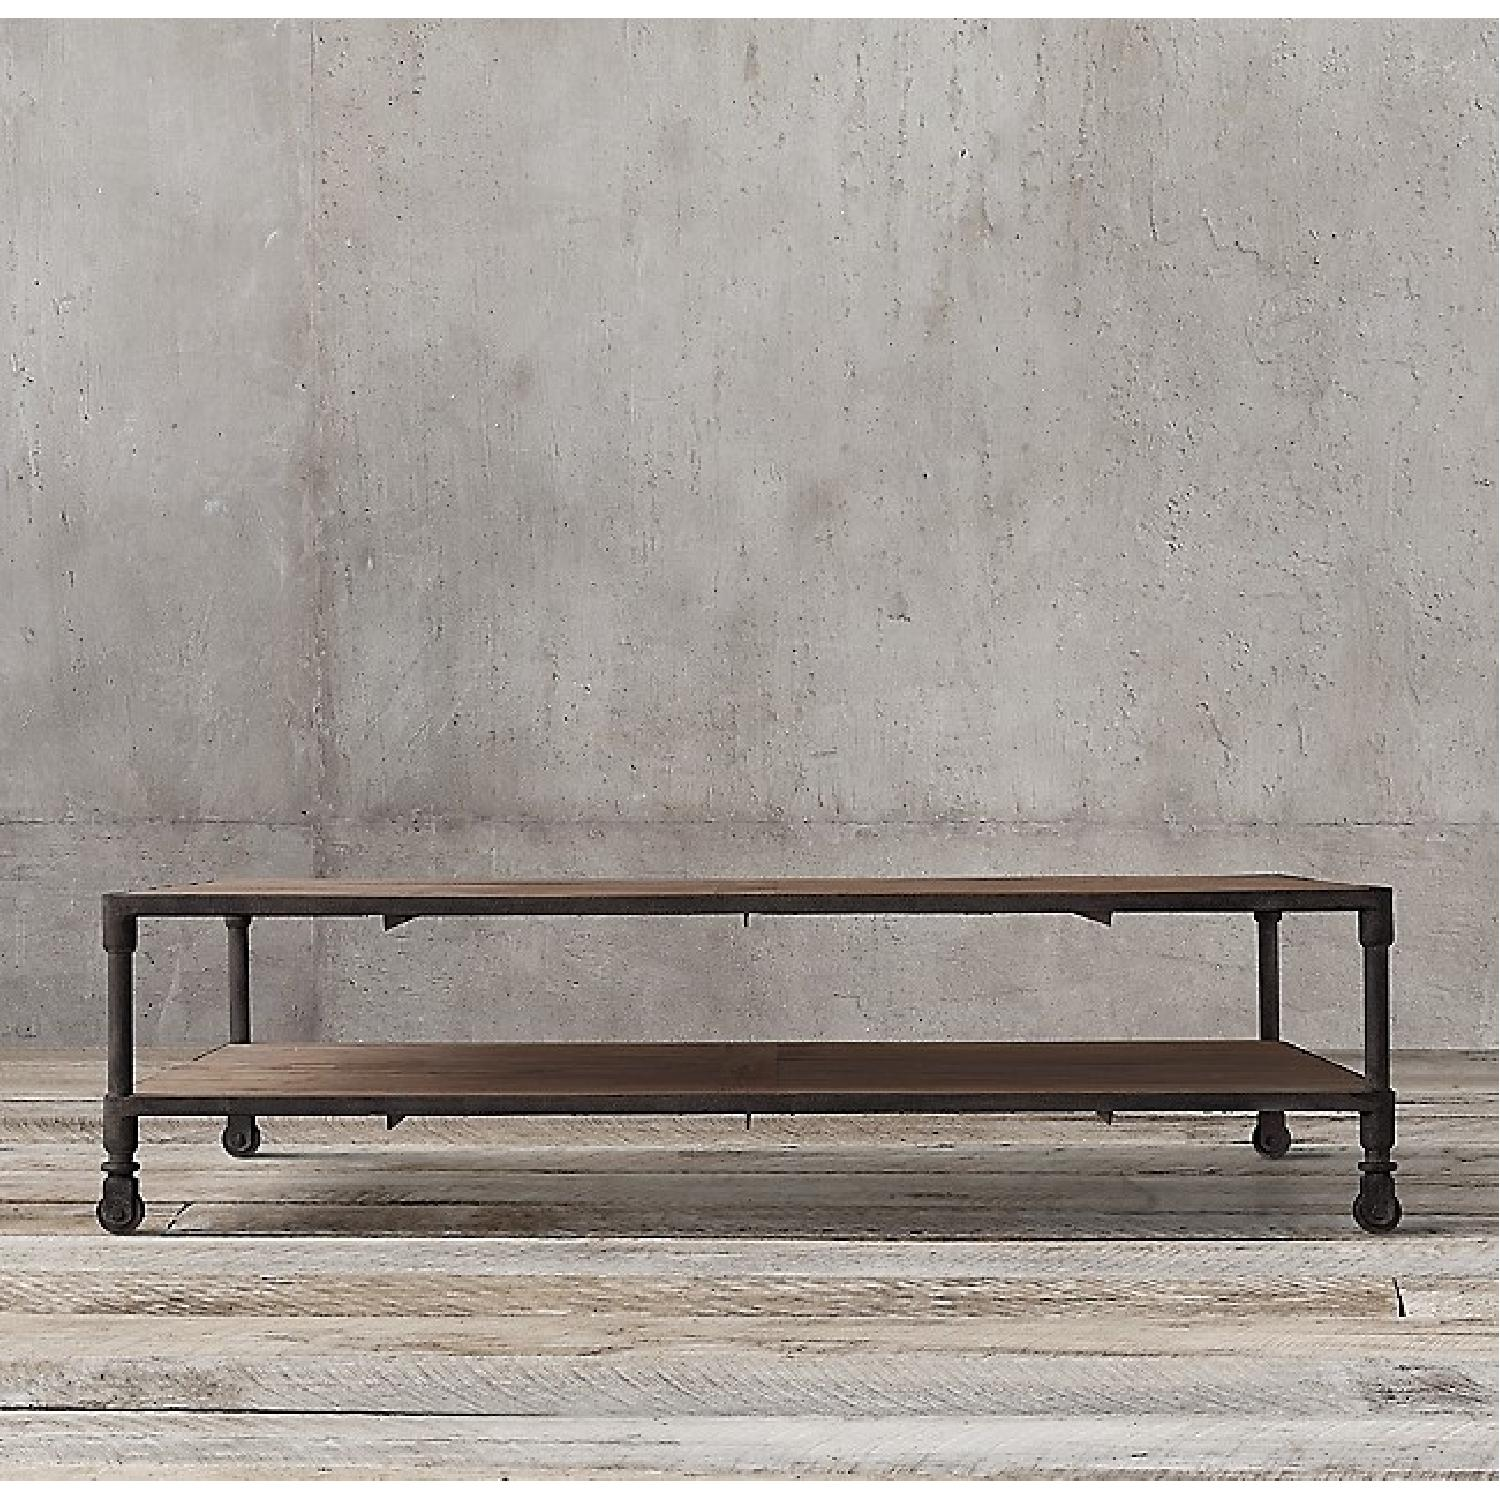 Restoration Hardware Dutch Industrial Coffee Table - image-1